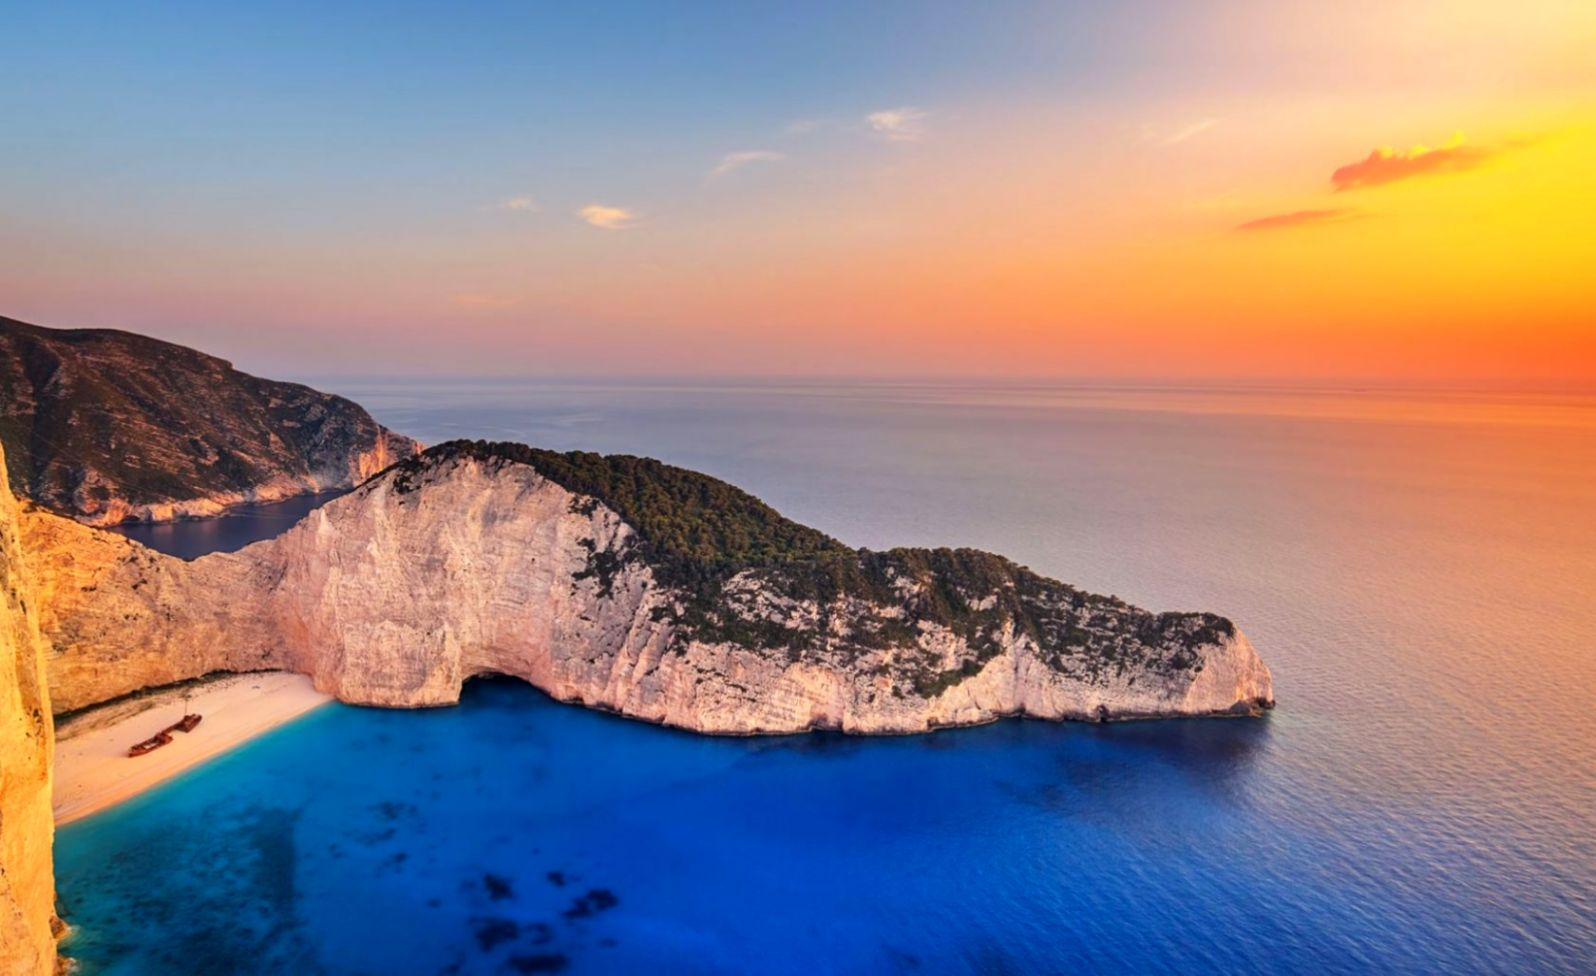 Navagio Beach Wallpapers Hd Image Beach   Dom Wallpapers